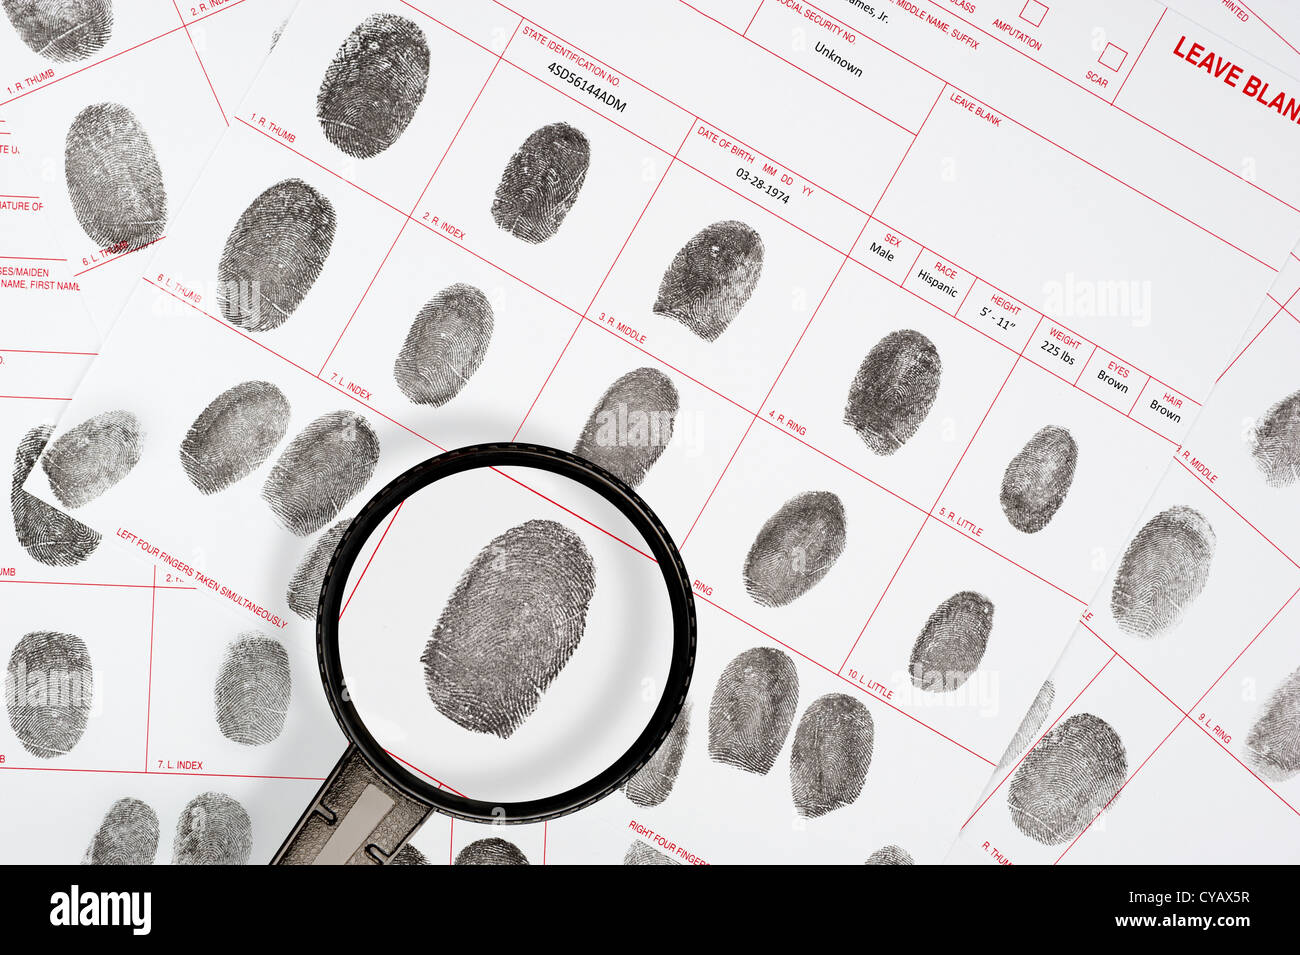 A forensic inspector looks at a suspect fingerprint on legal detective files. - Stock Image